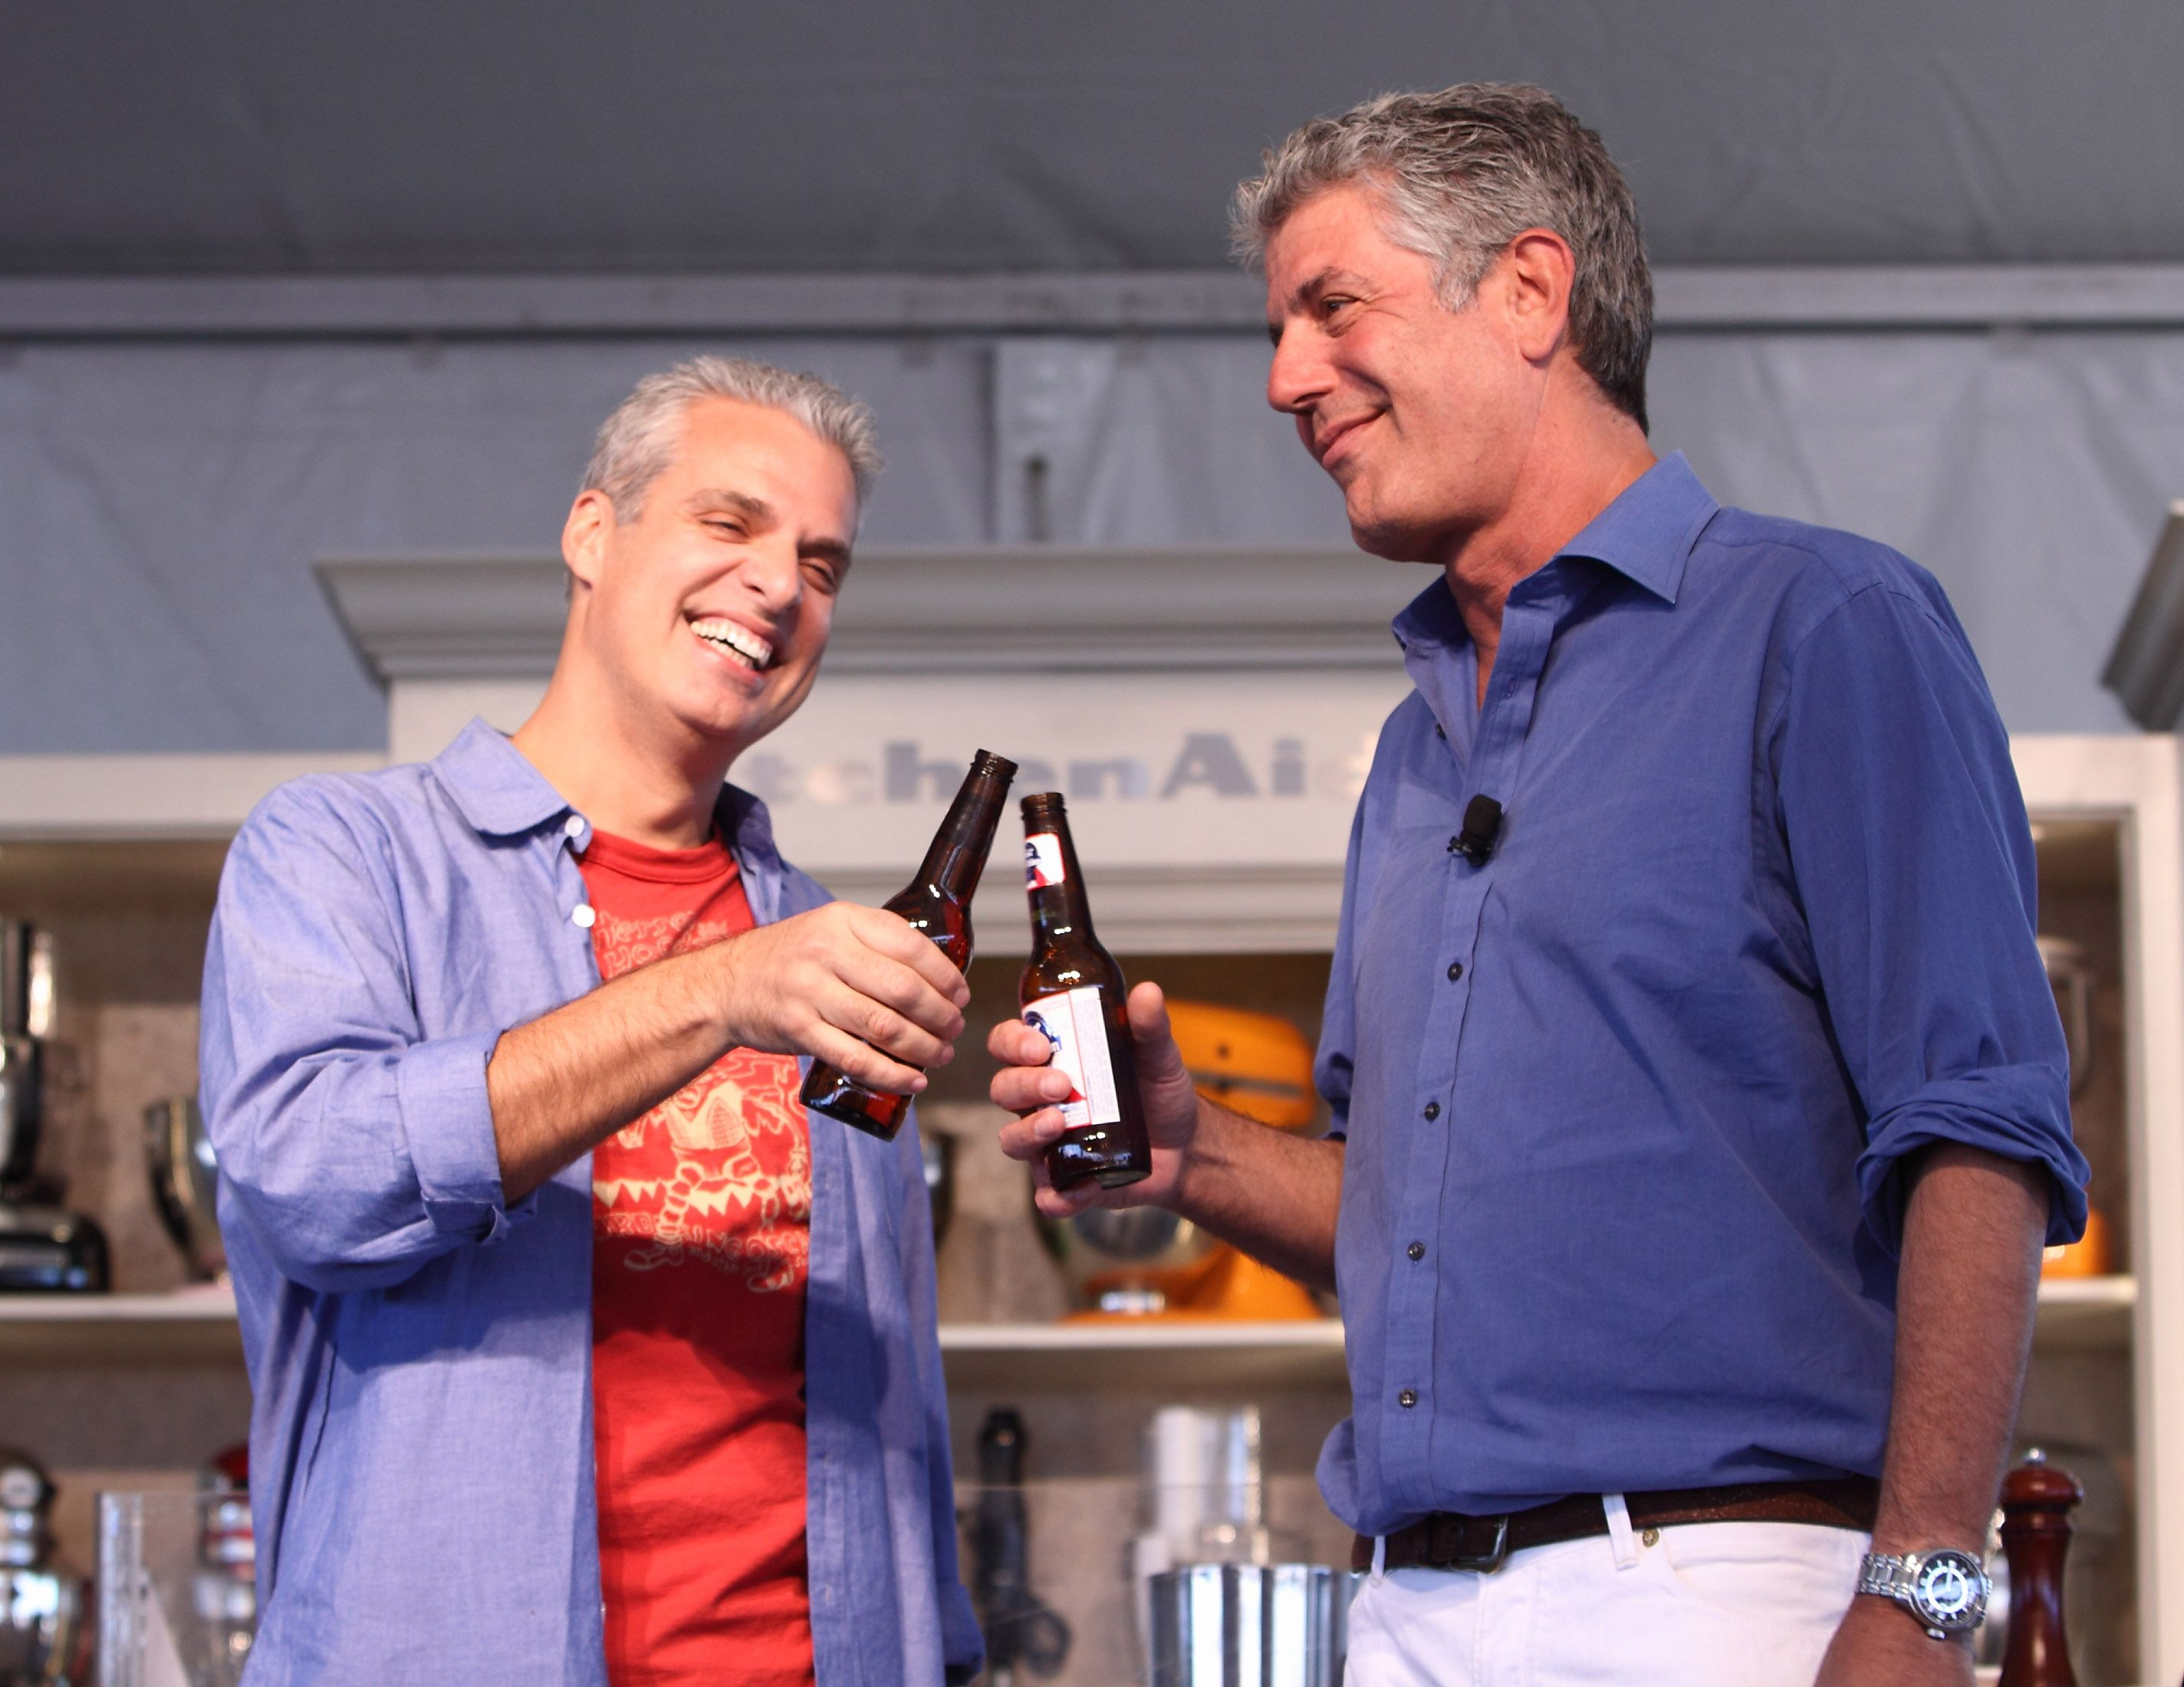 José Andrés And Eric Ripert Honor Anthony Bourdain With A Culinary Institute Of America Scholarship